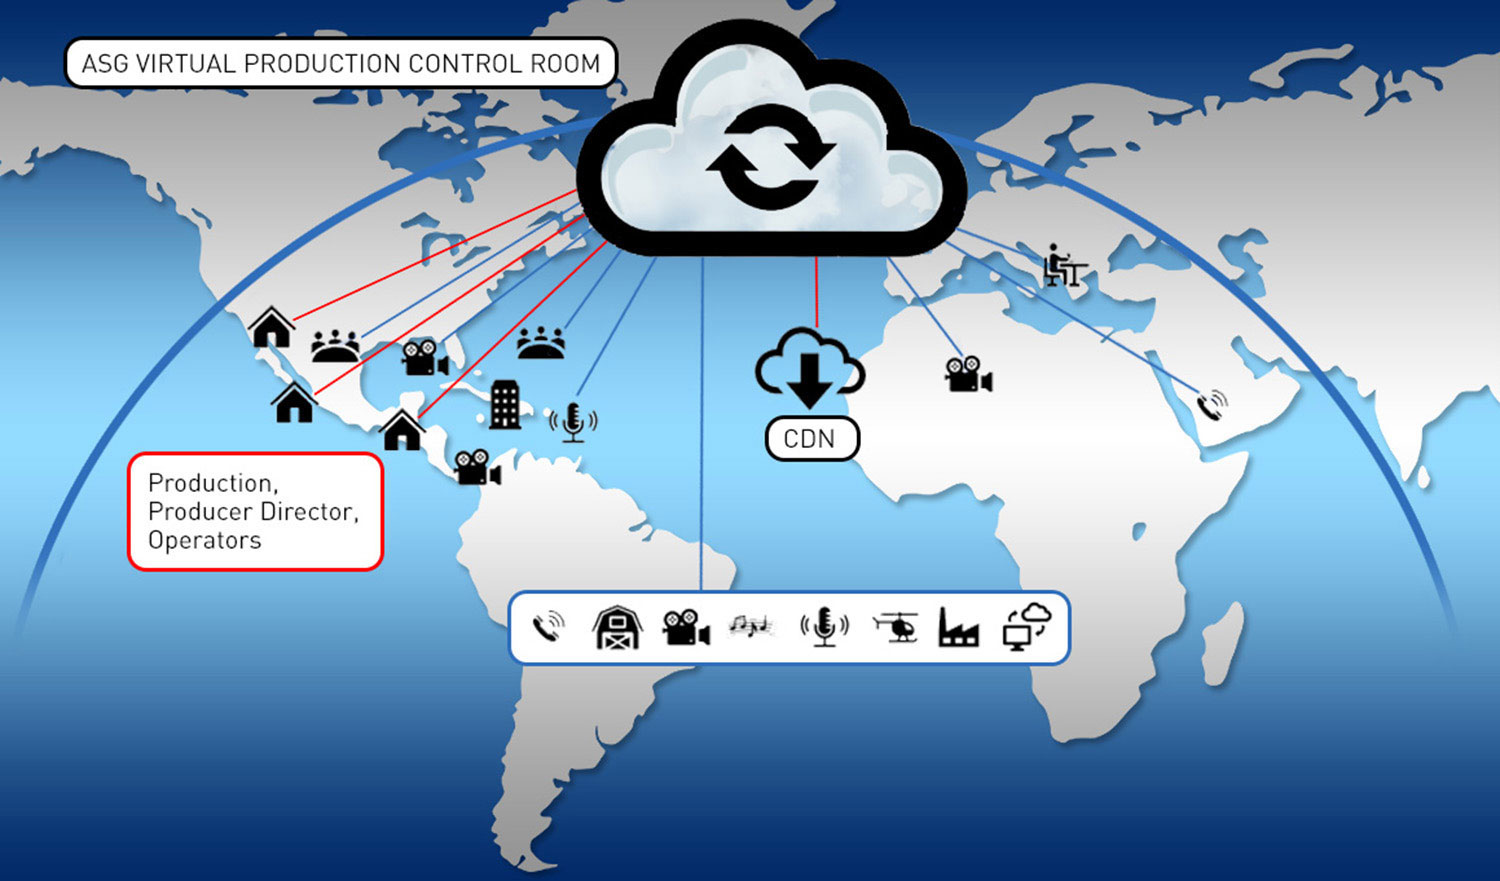 Your Virtual Production Control Room in the Cloud